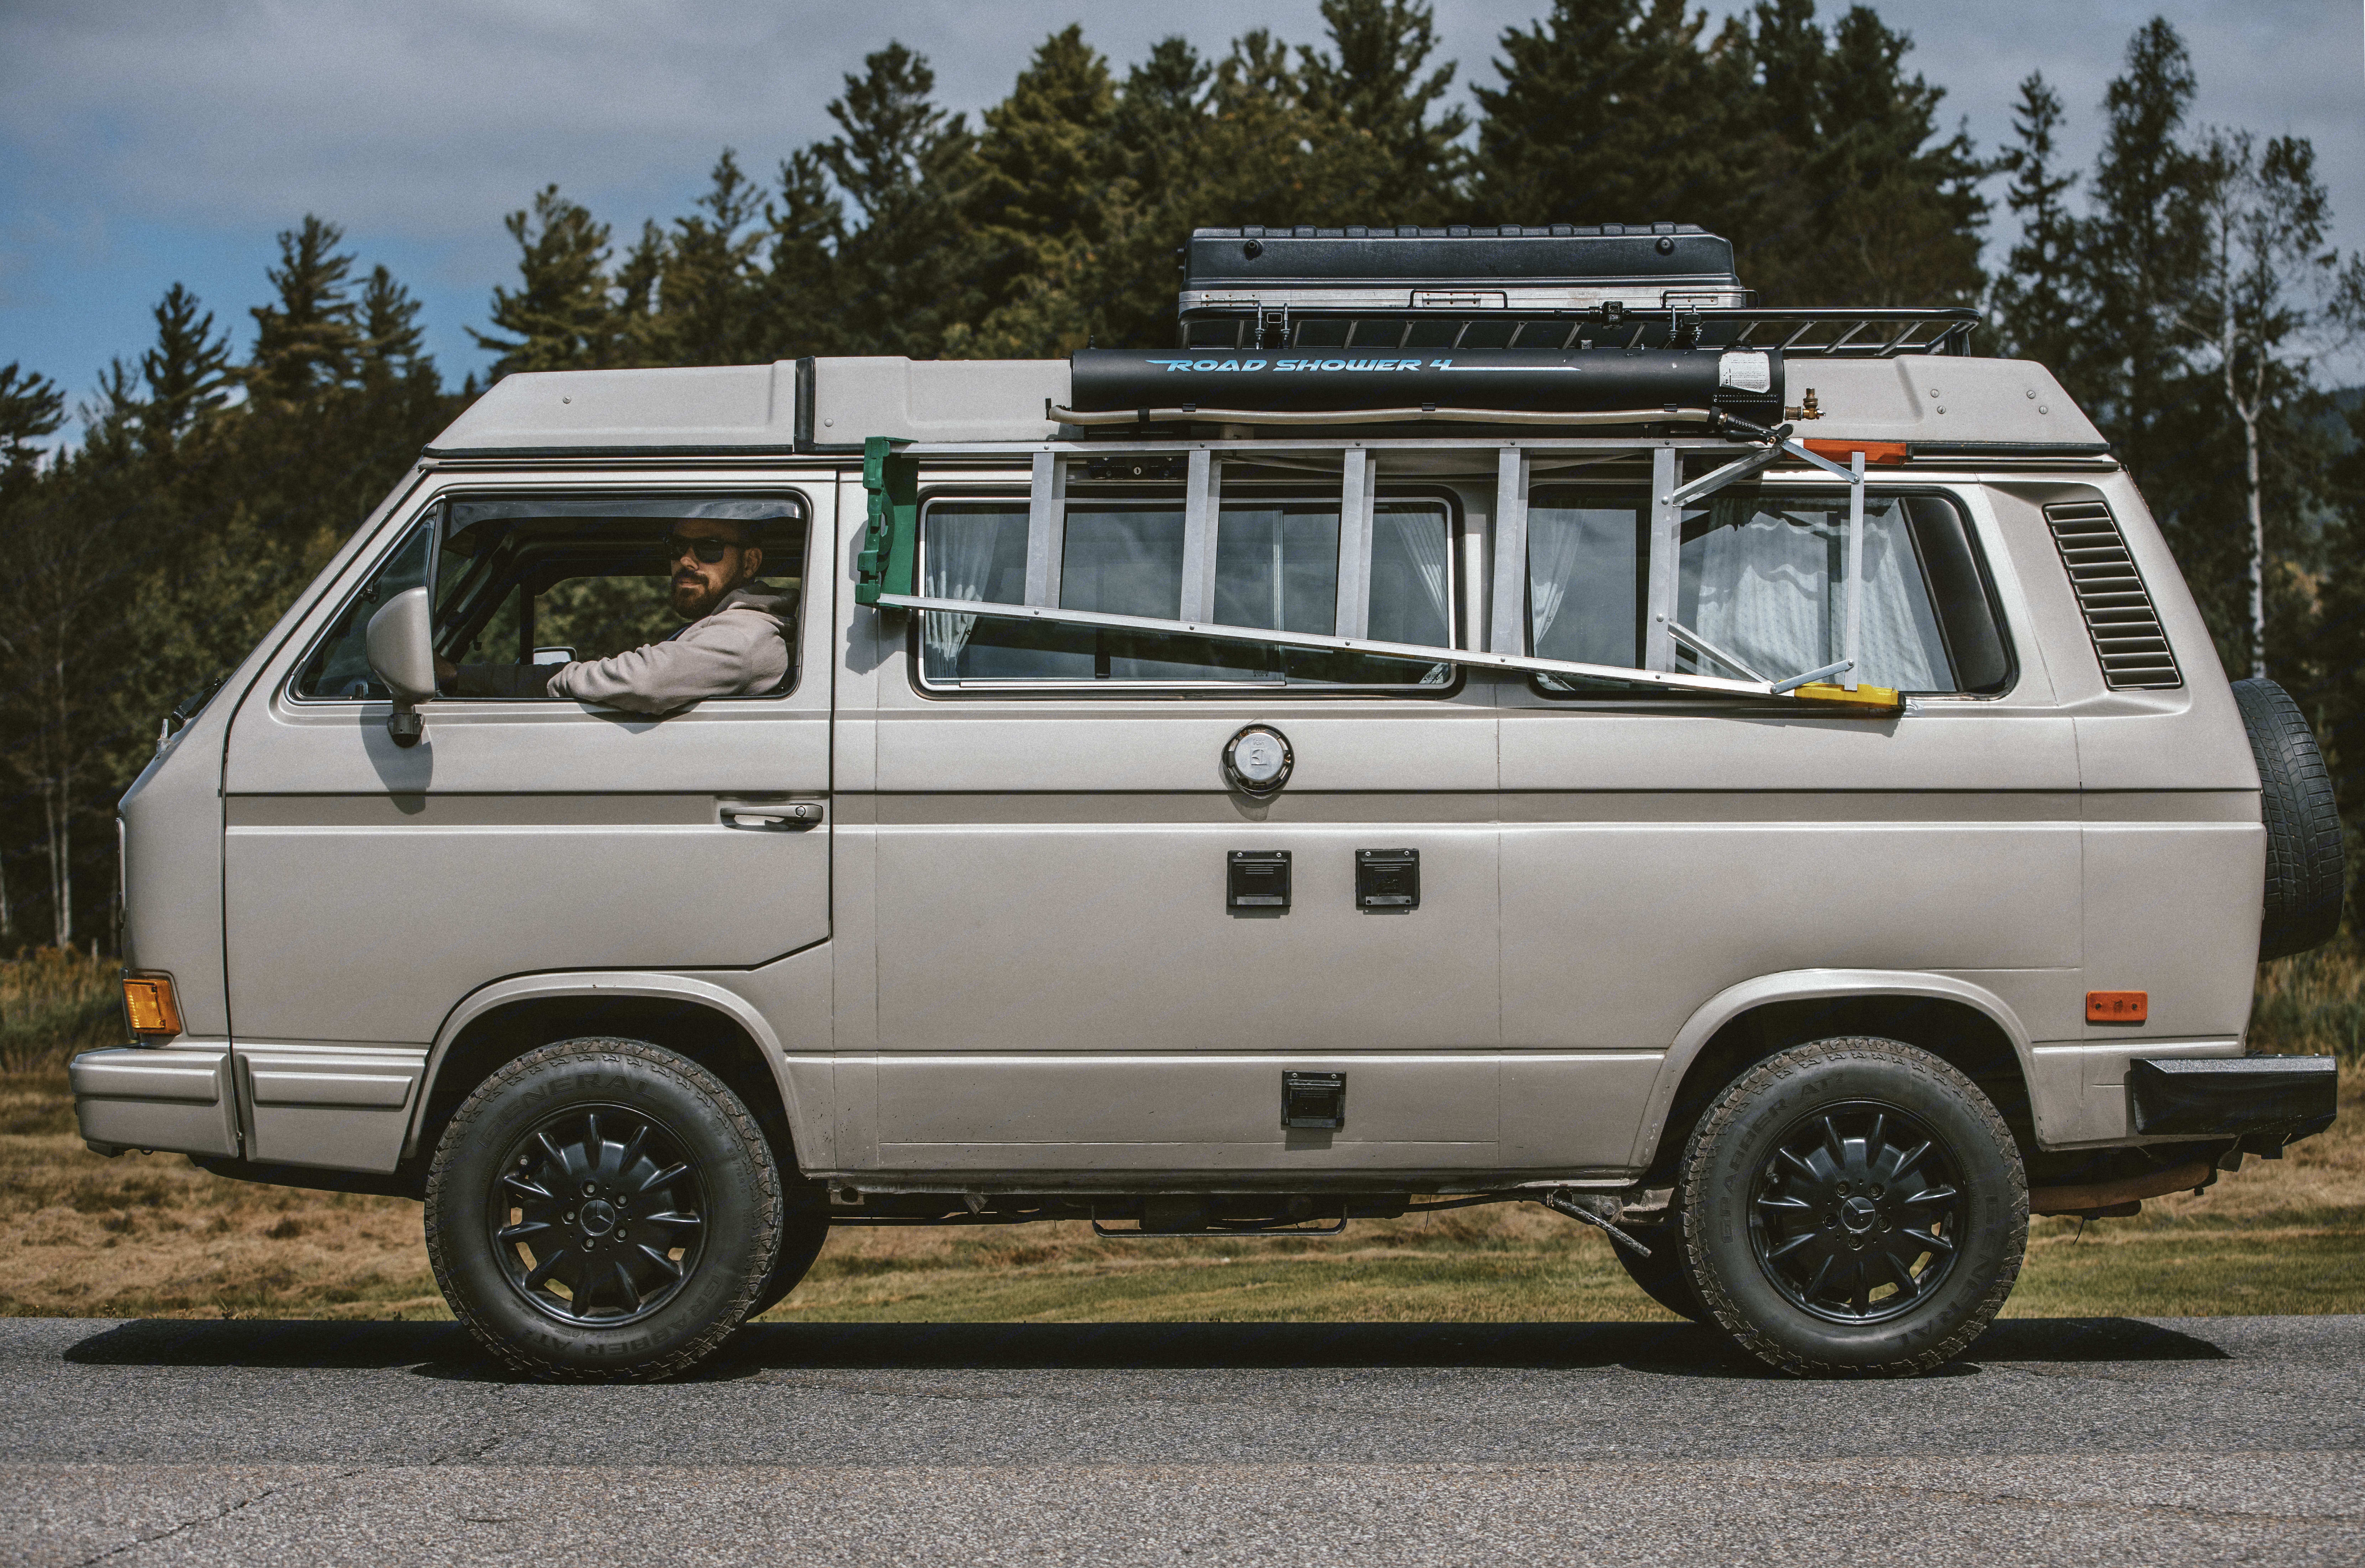 Badass roadshower, perfect for offgrid camping. 7 gallons of hot water, around 8 min of pressurize shower.. Volkswagen T3 Westfalia 1991